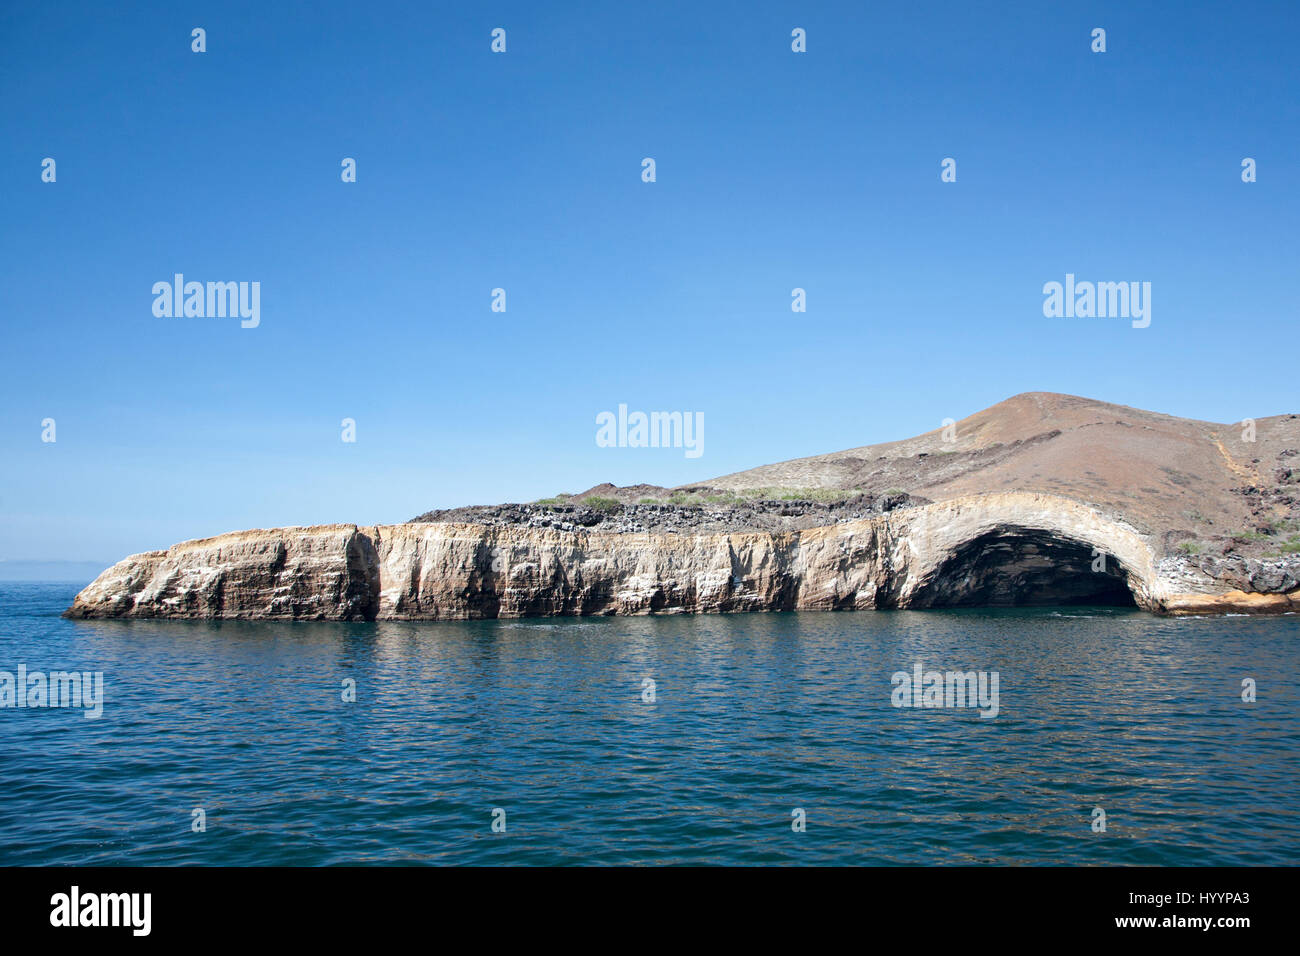 Sea cave eroded into tuff cliff (compacted volcanic ash) on Isabela Island in the Galapagos - Stock Image